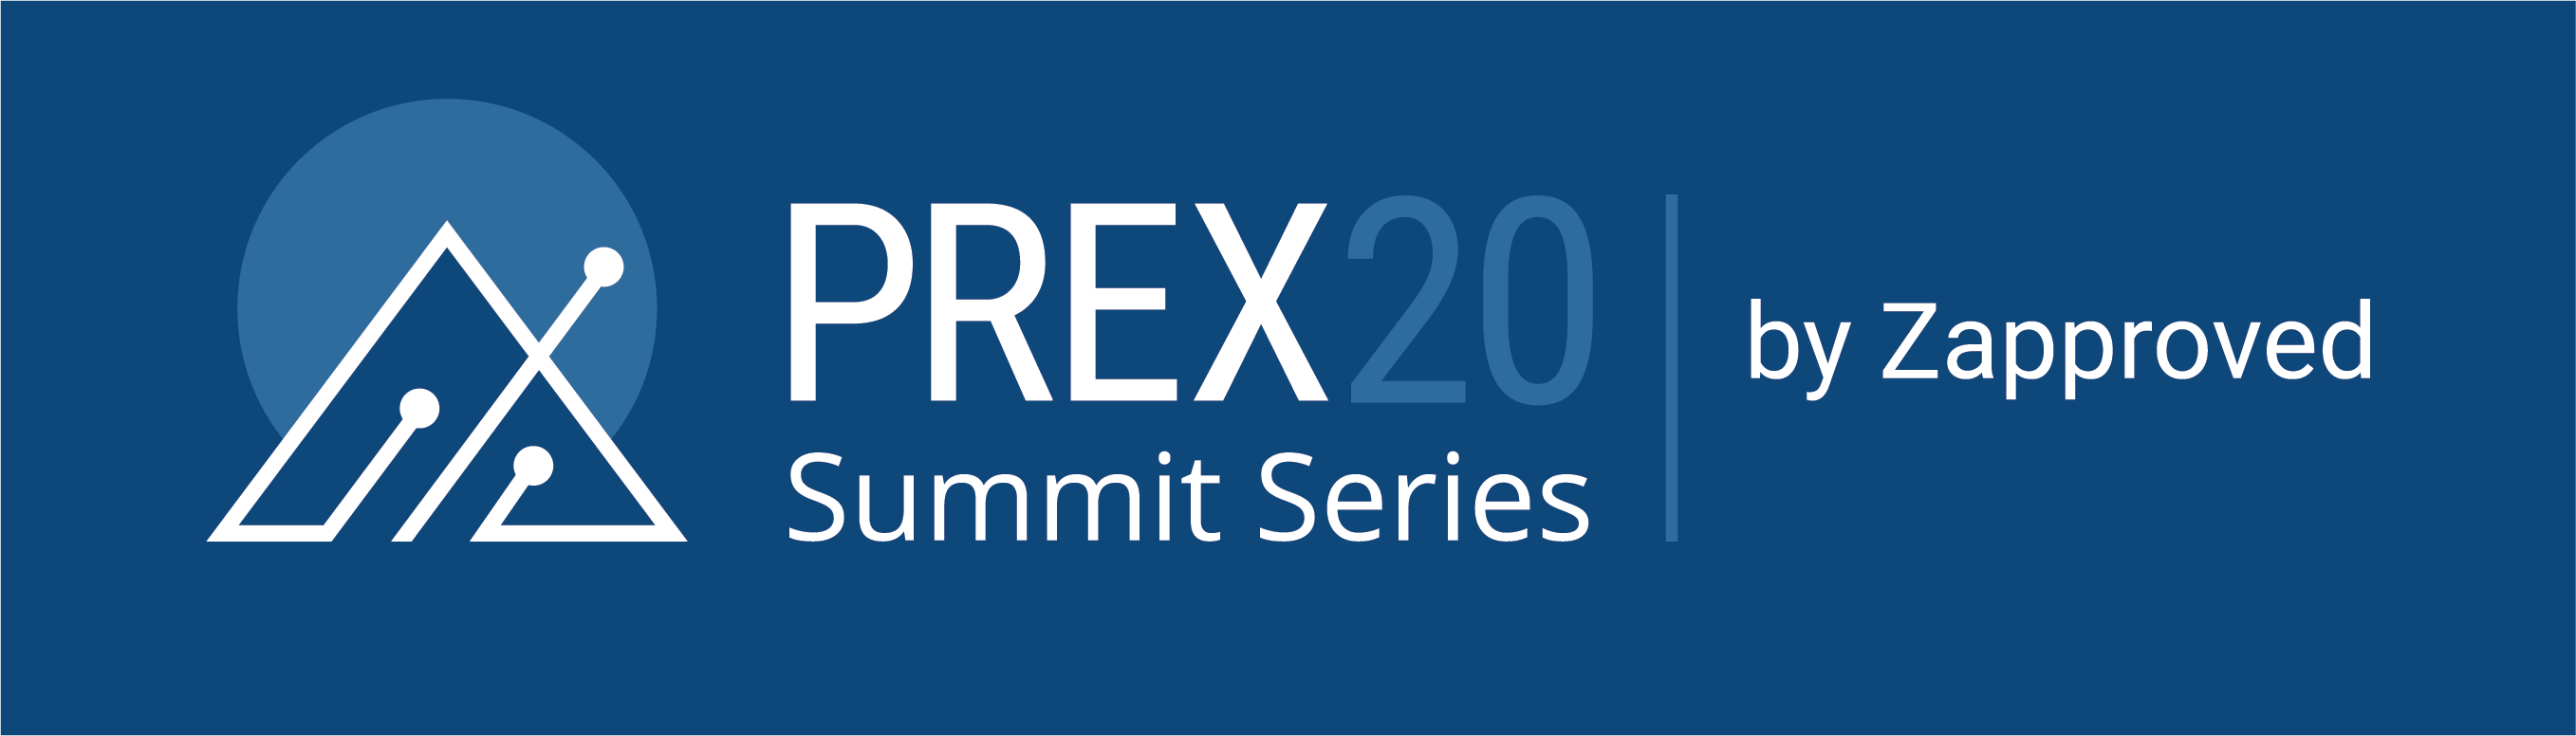 Refresh_PREX2020_logo_SummitSeries-Primary-bluebg-horizontal